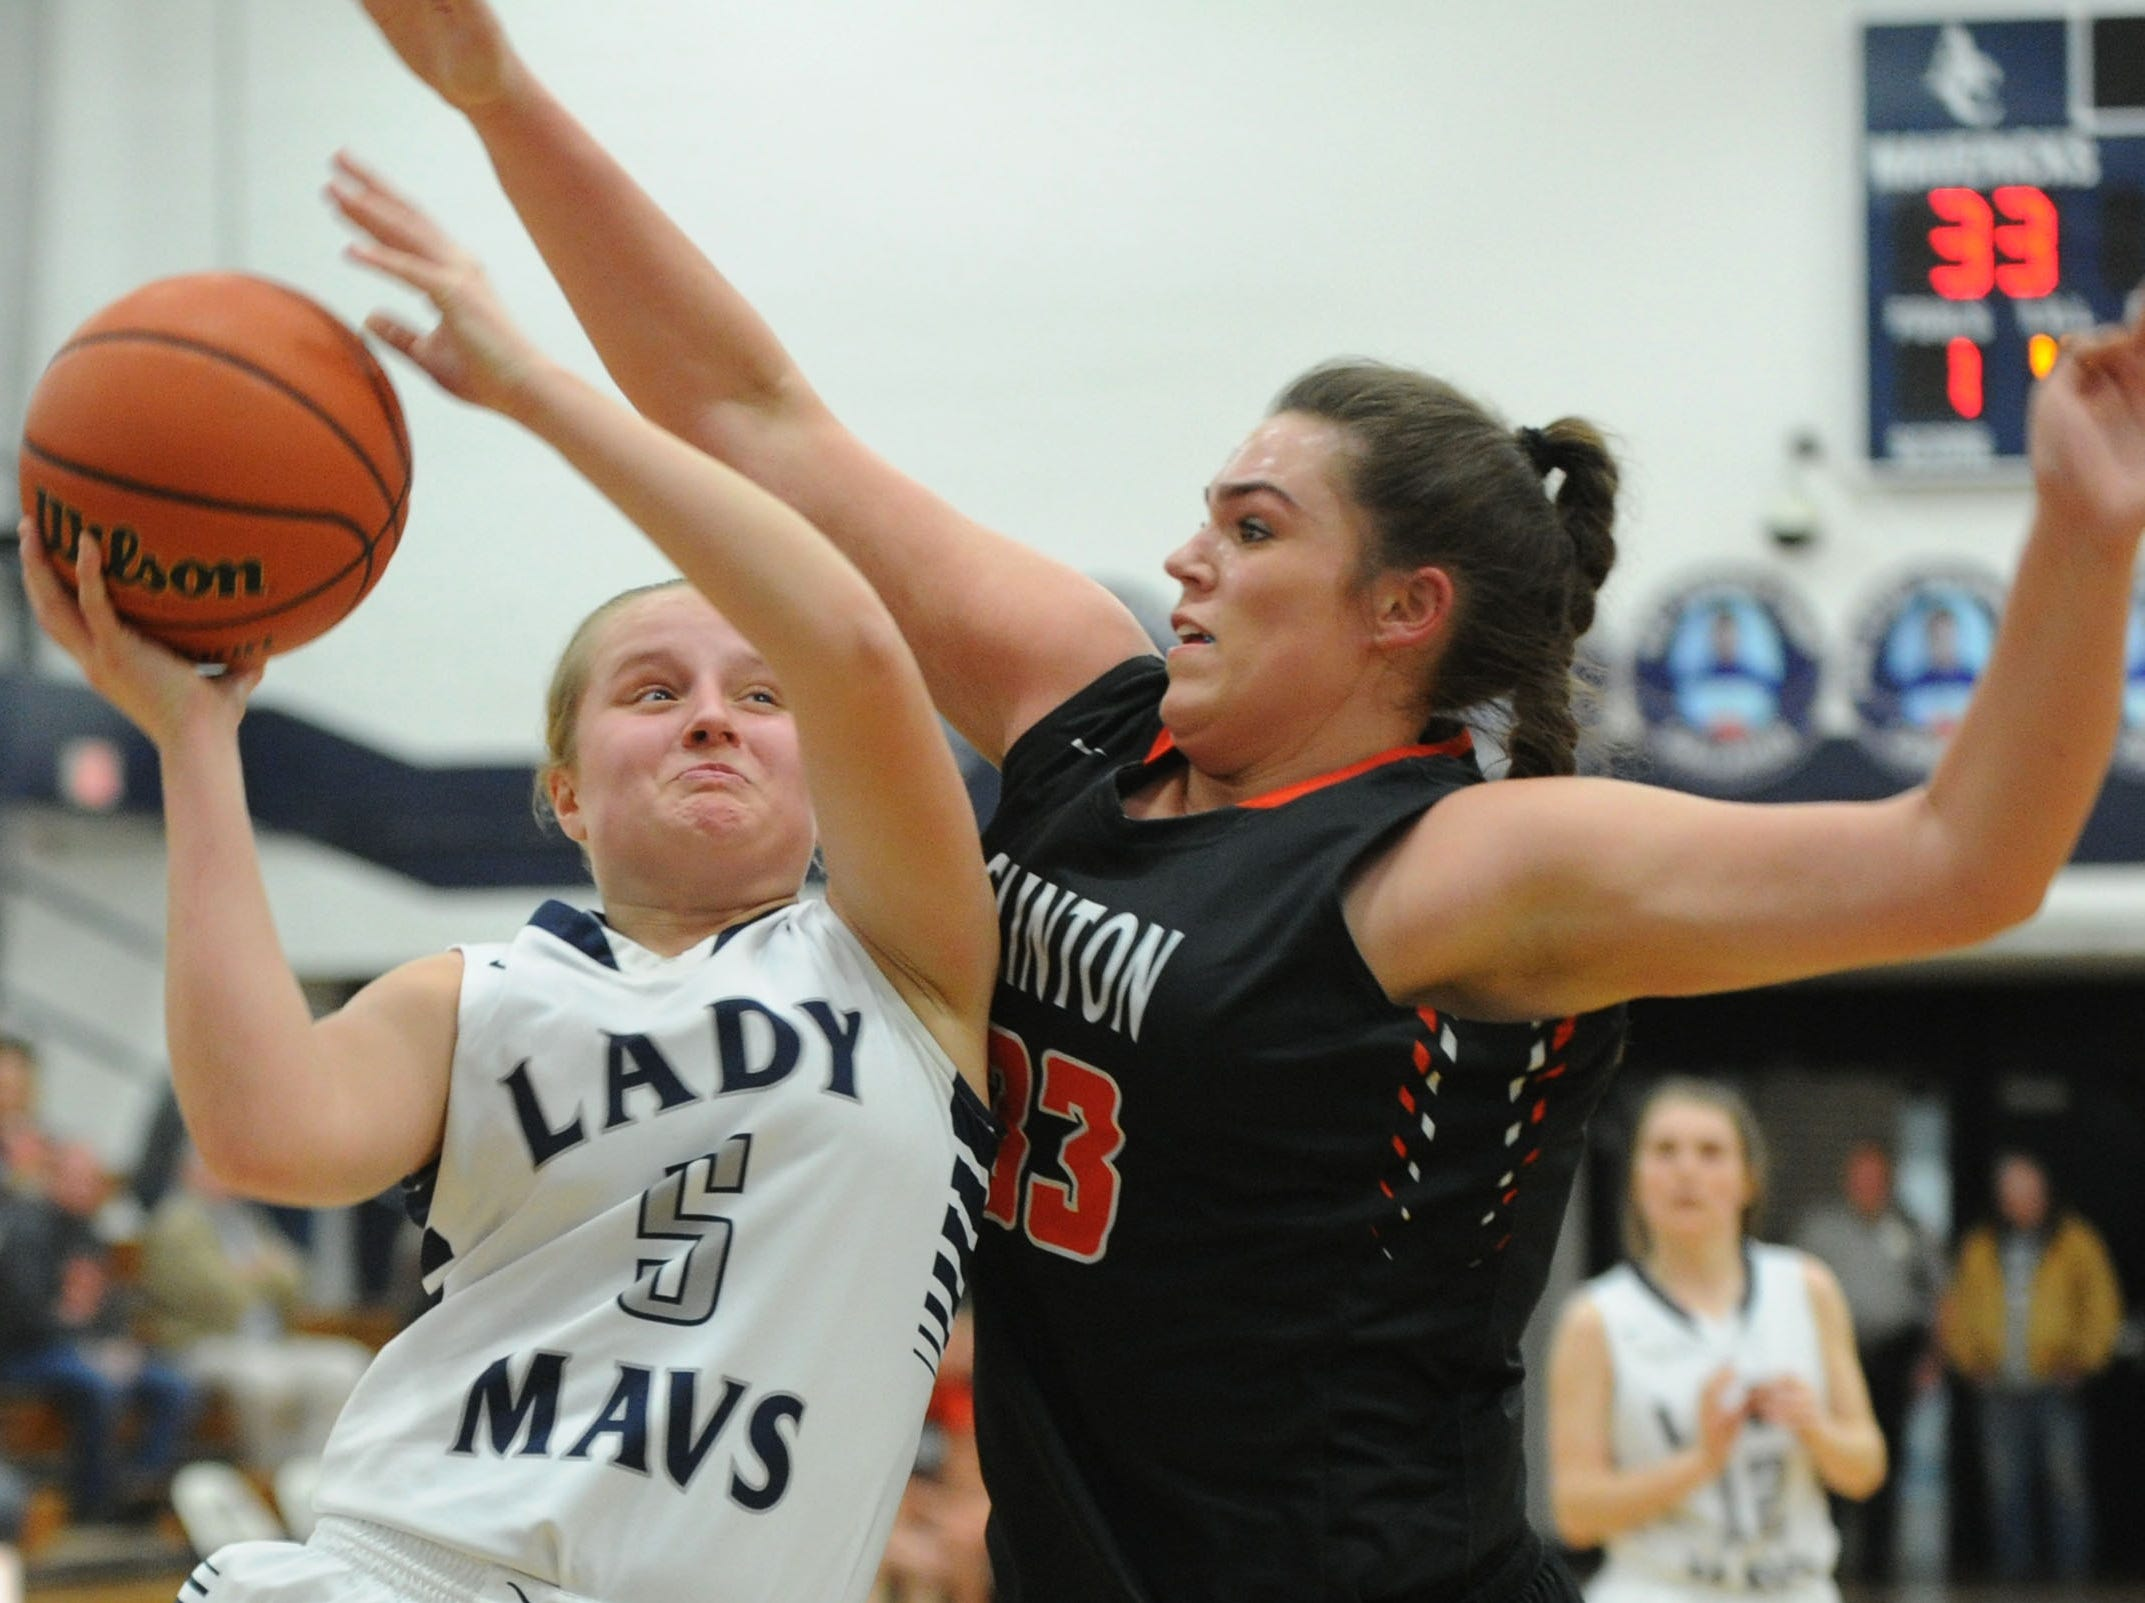 Anderson County High School's Maddie Sickau, 5, attempts a shot while defended by Clinton High School's Kelly Wandell, 33, at a high school girls basketball game at Anderson County High School against Clinton High School on Tuesday, Feb. 16 2016.